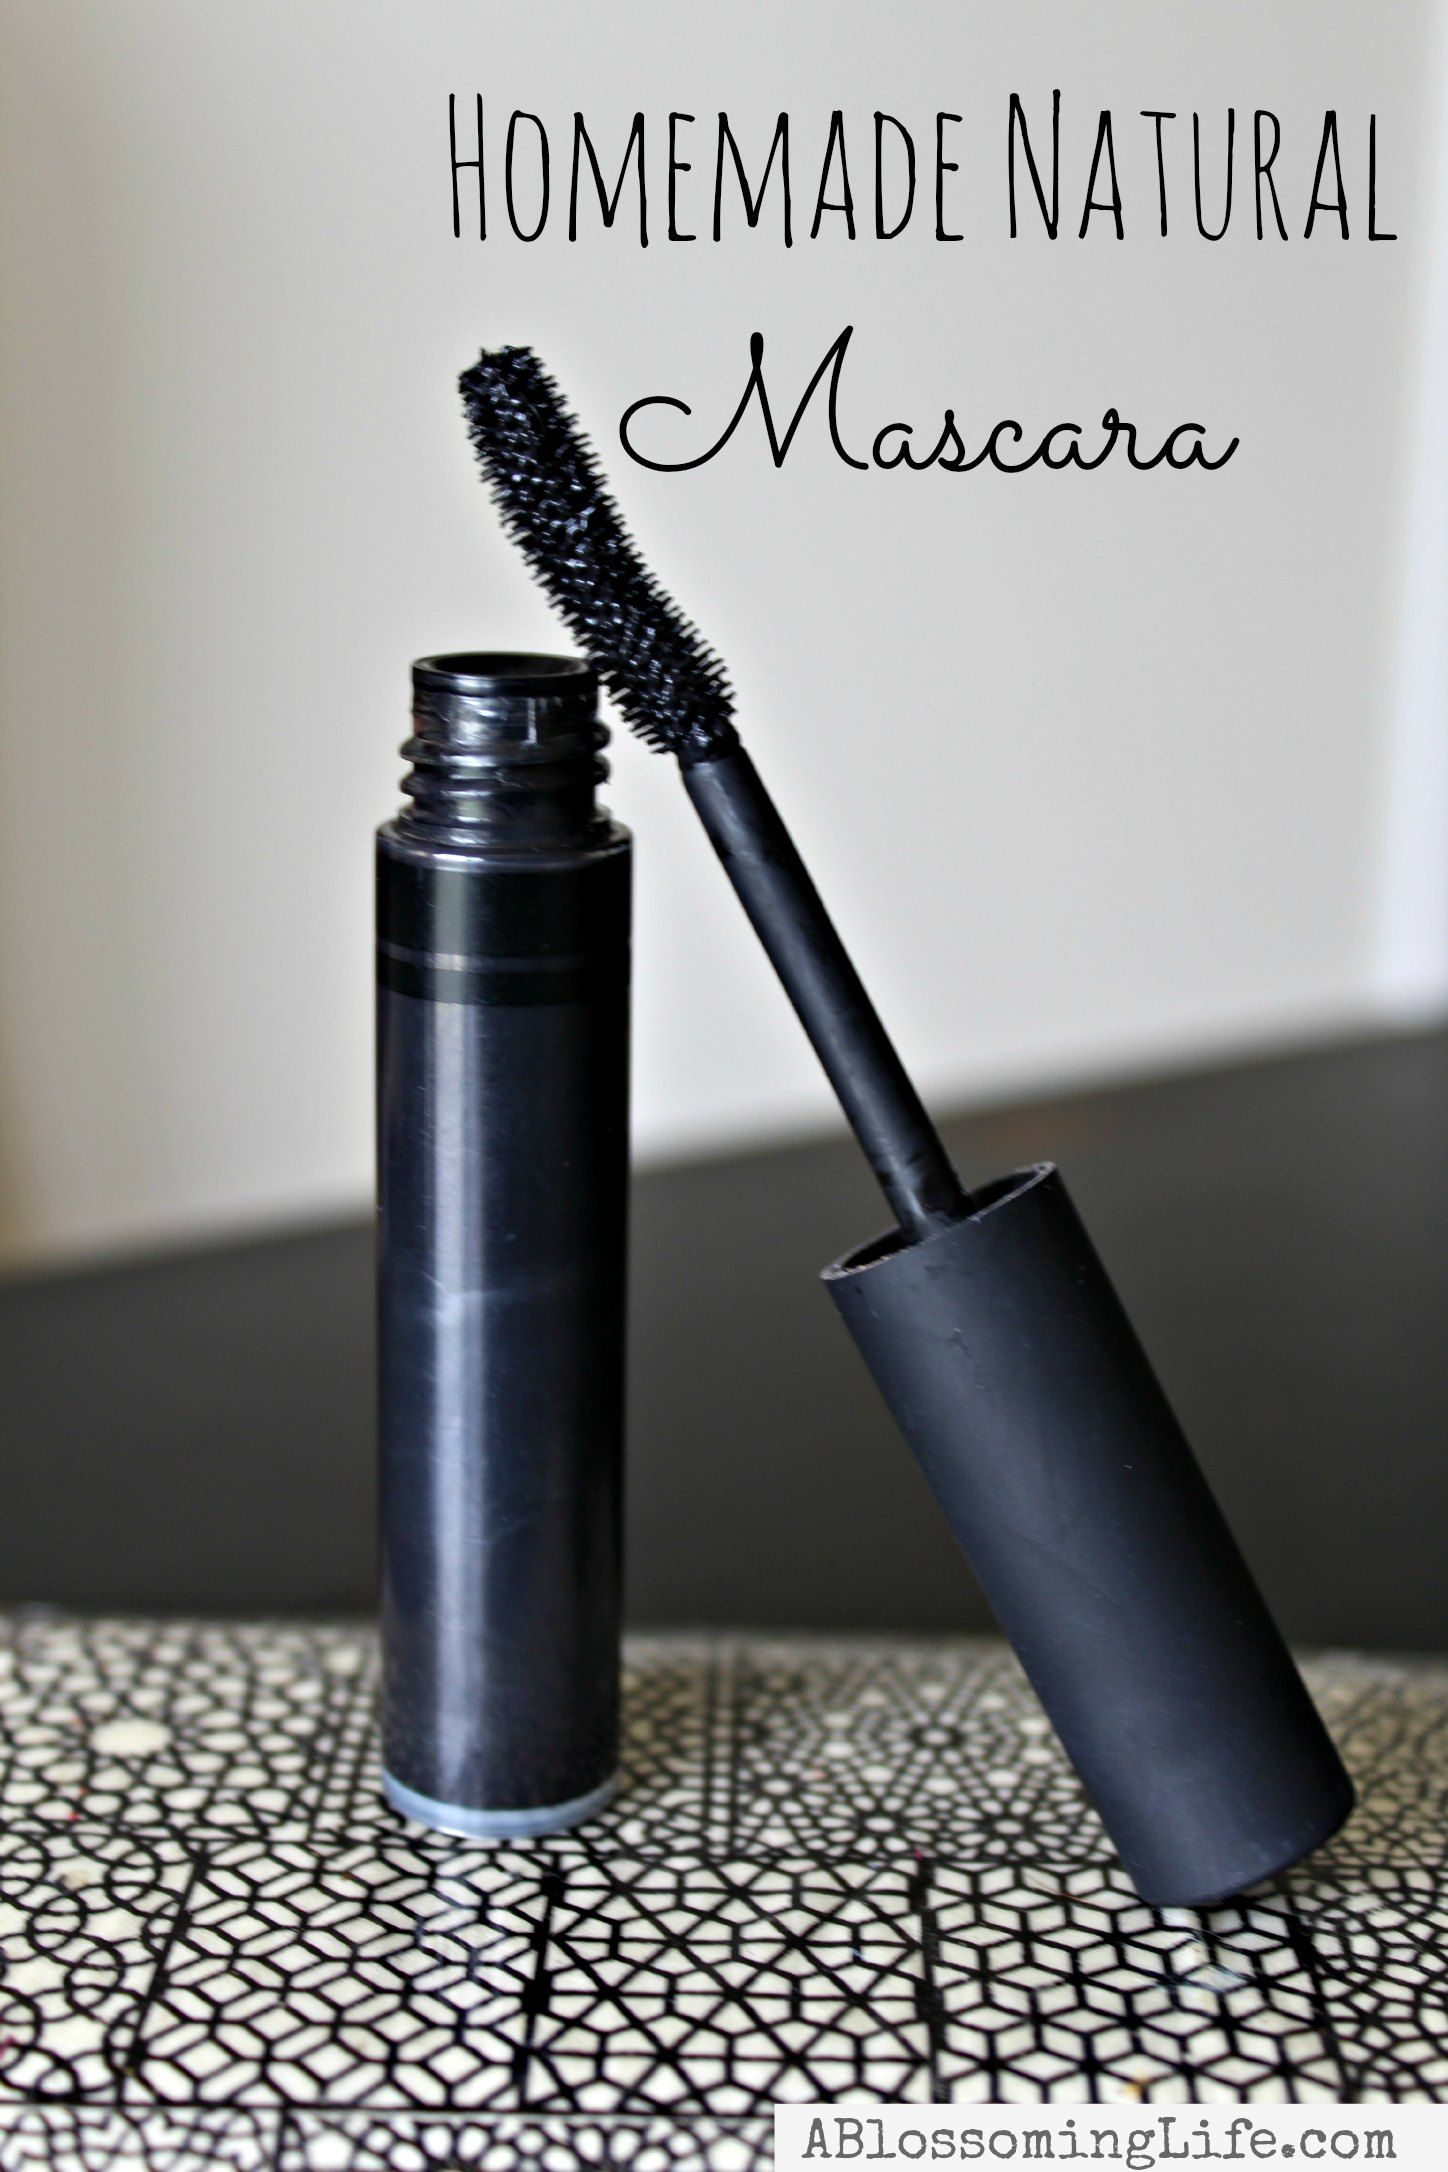 Natural Homemade Mascara: Thicker Longer Lashes #diybeauty